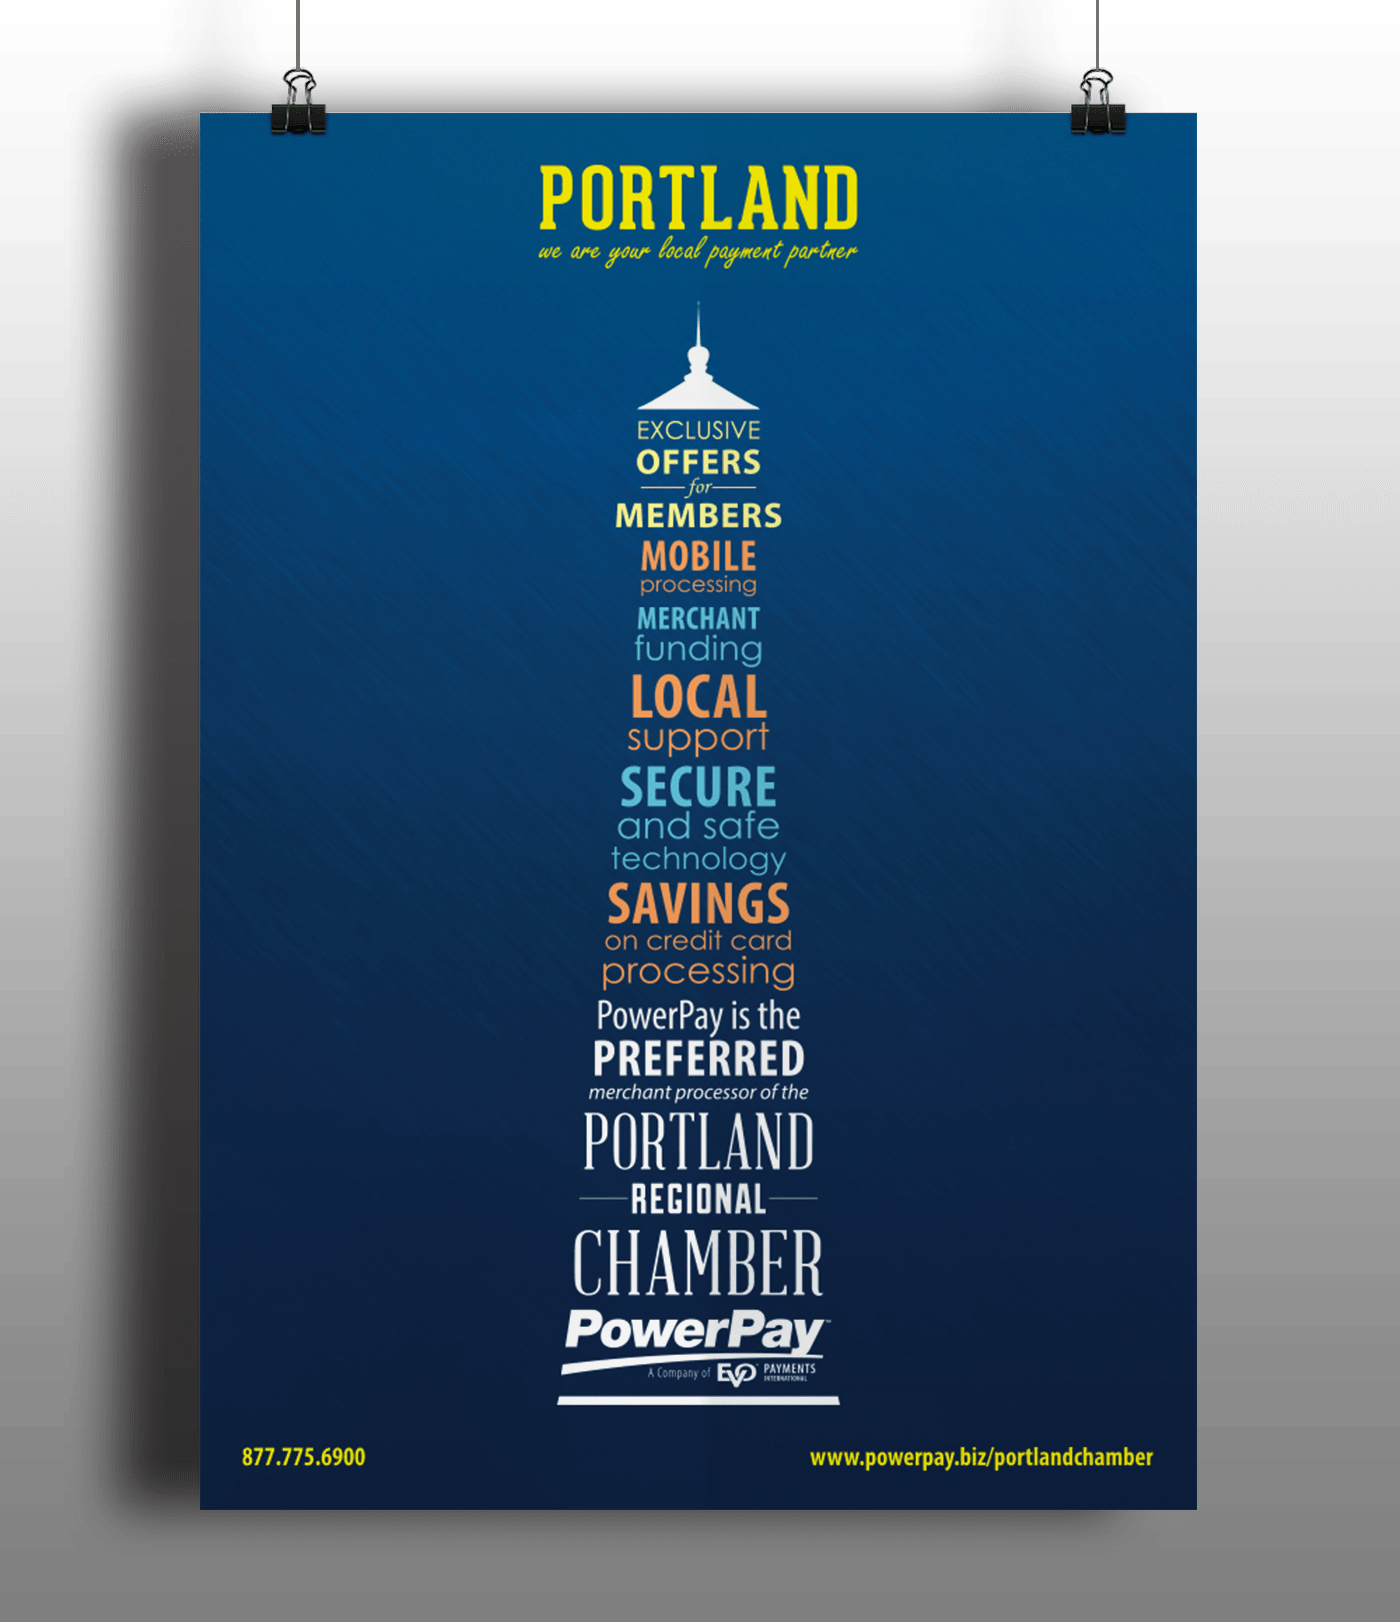 PowerPay/Portland Regional Chamber Marketing Materials